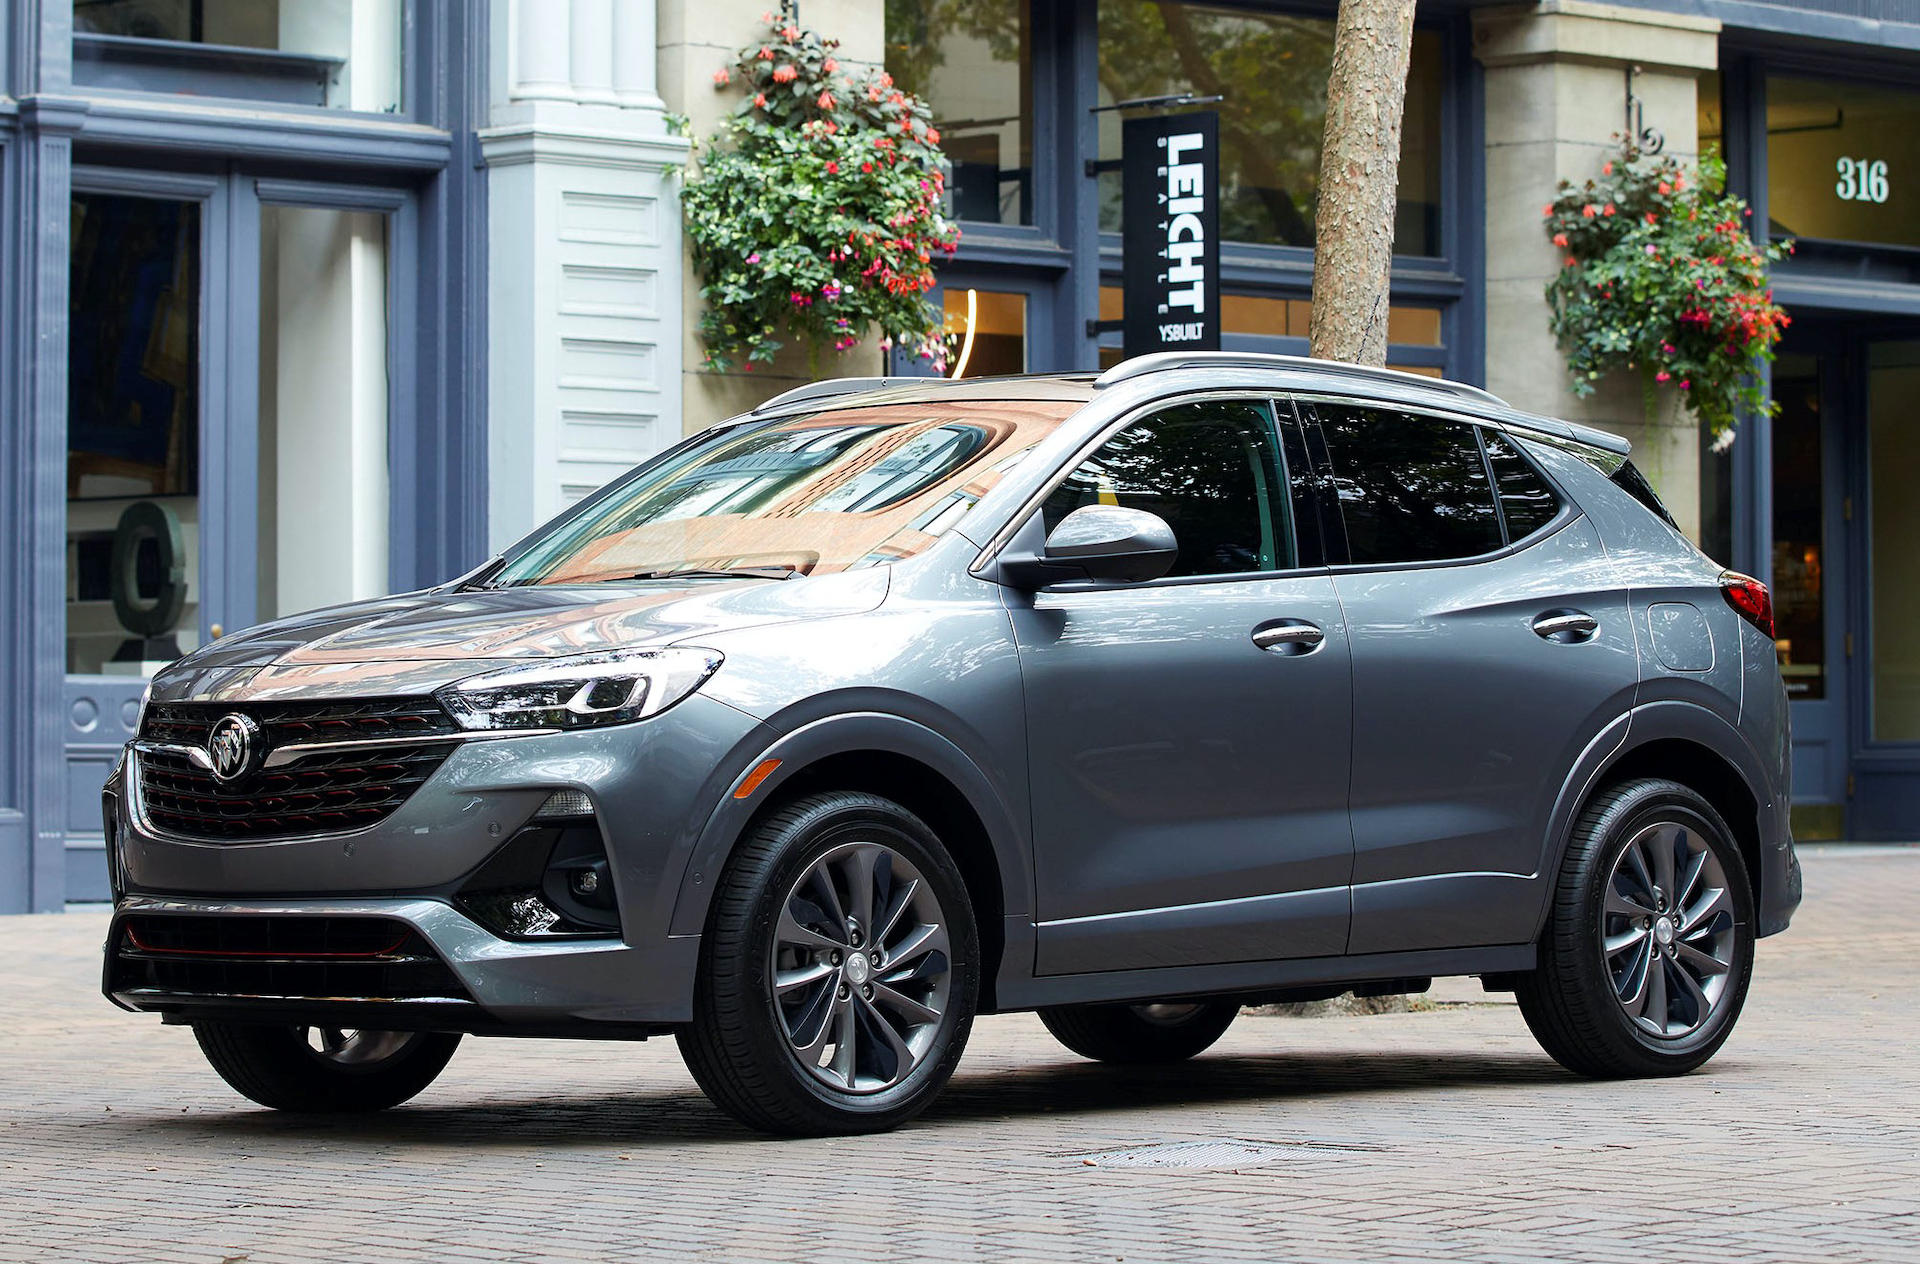 2021 Buick Encore Review, Ratings, Specs, Prices, And Photos 2021 Buick Encore Cost, Build And Price, Engine